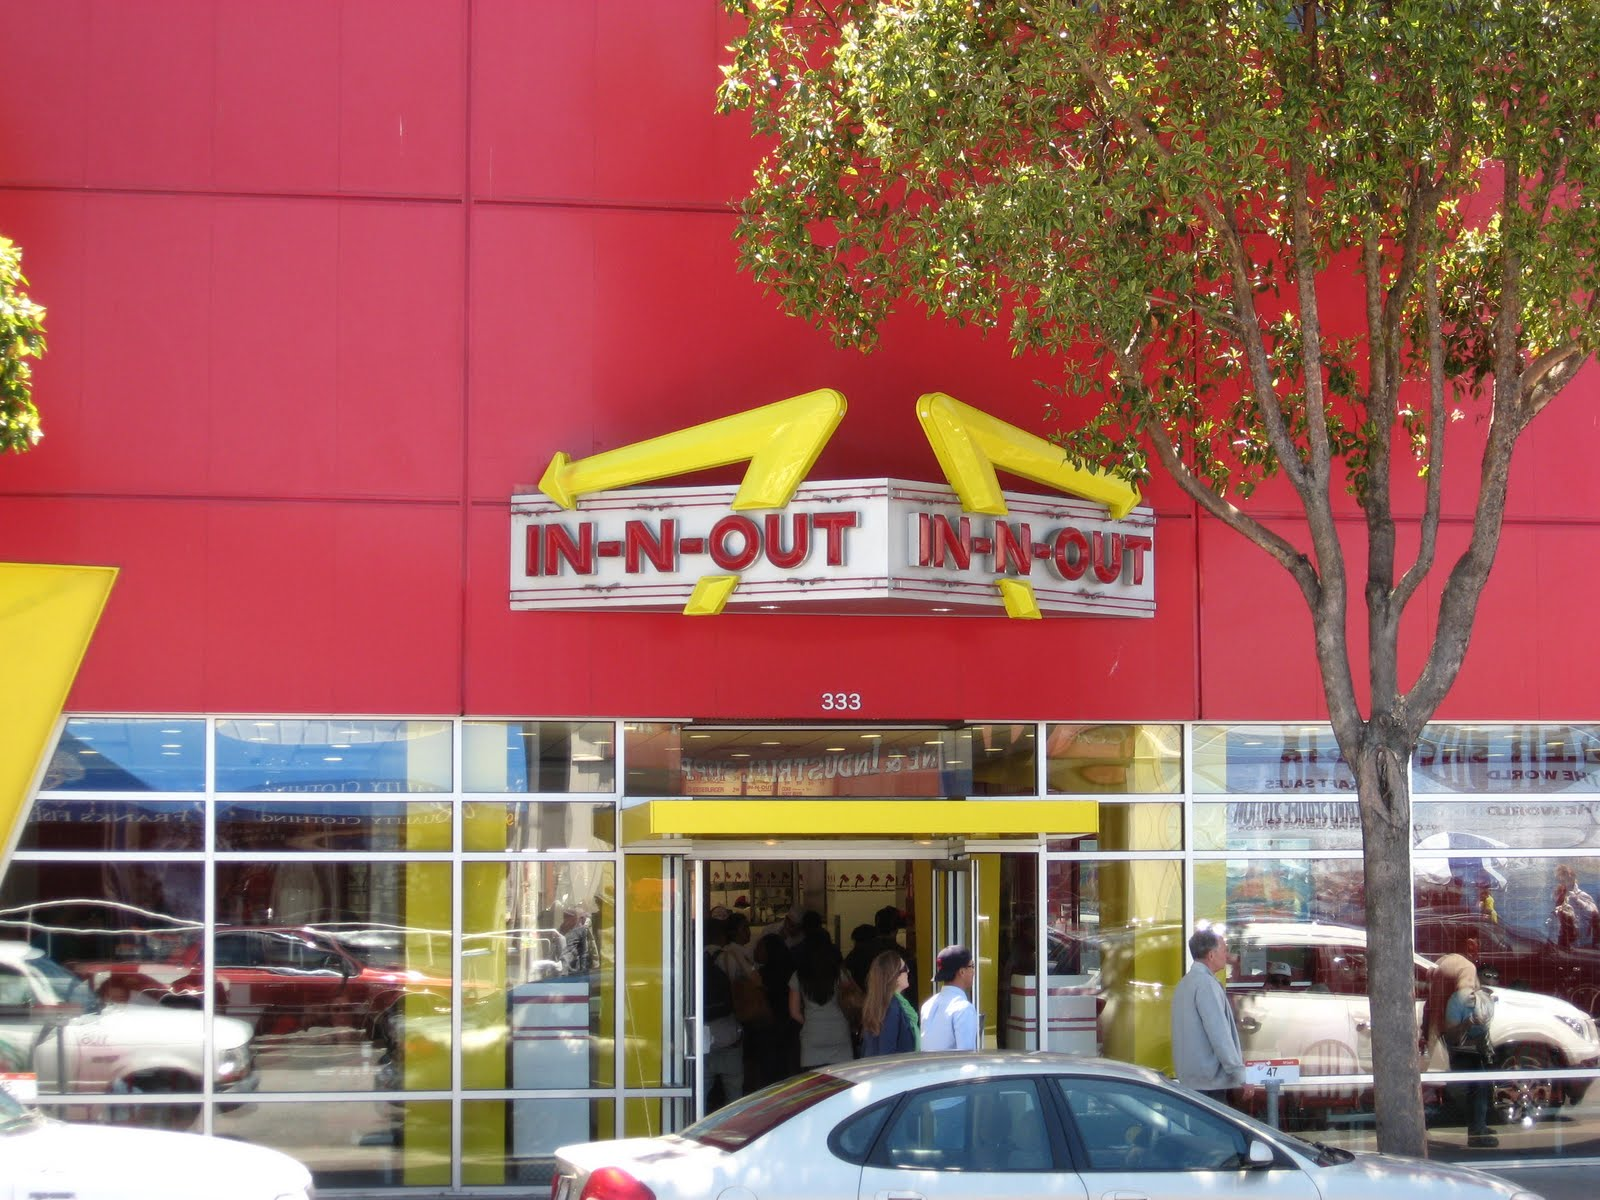 silver bay bbw personals Find your thai beauty the largest thai dating site with over 15 million members review your matches join free.